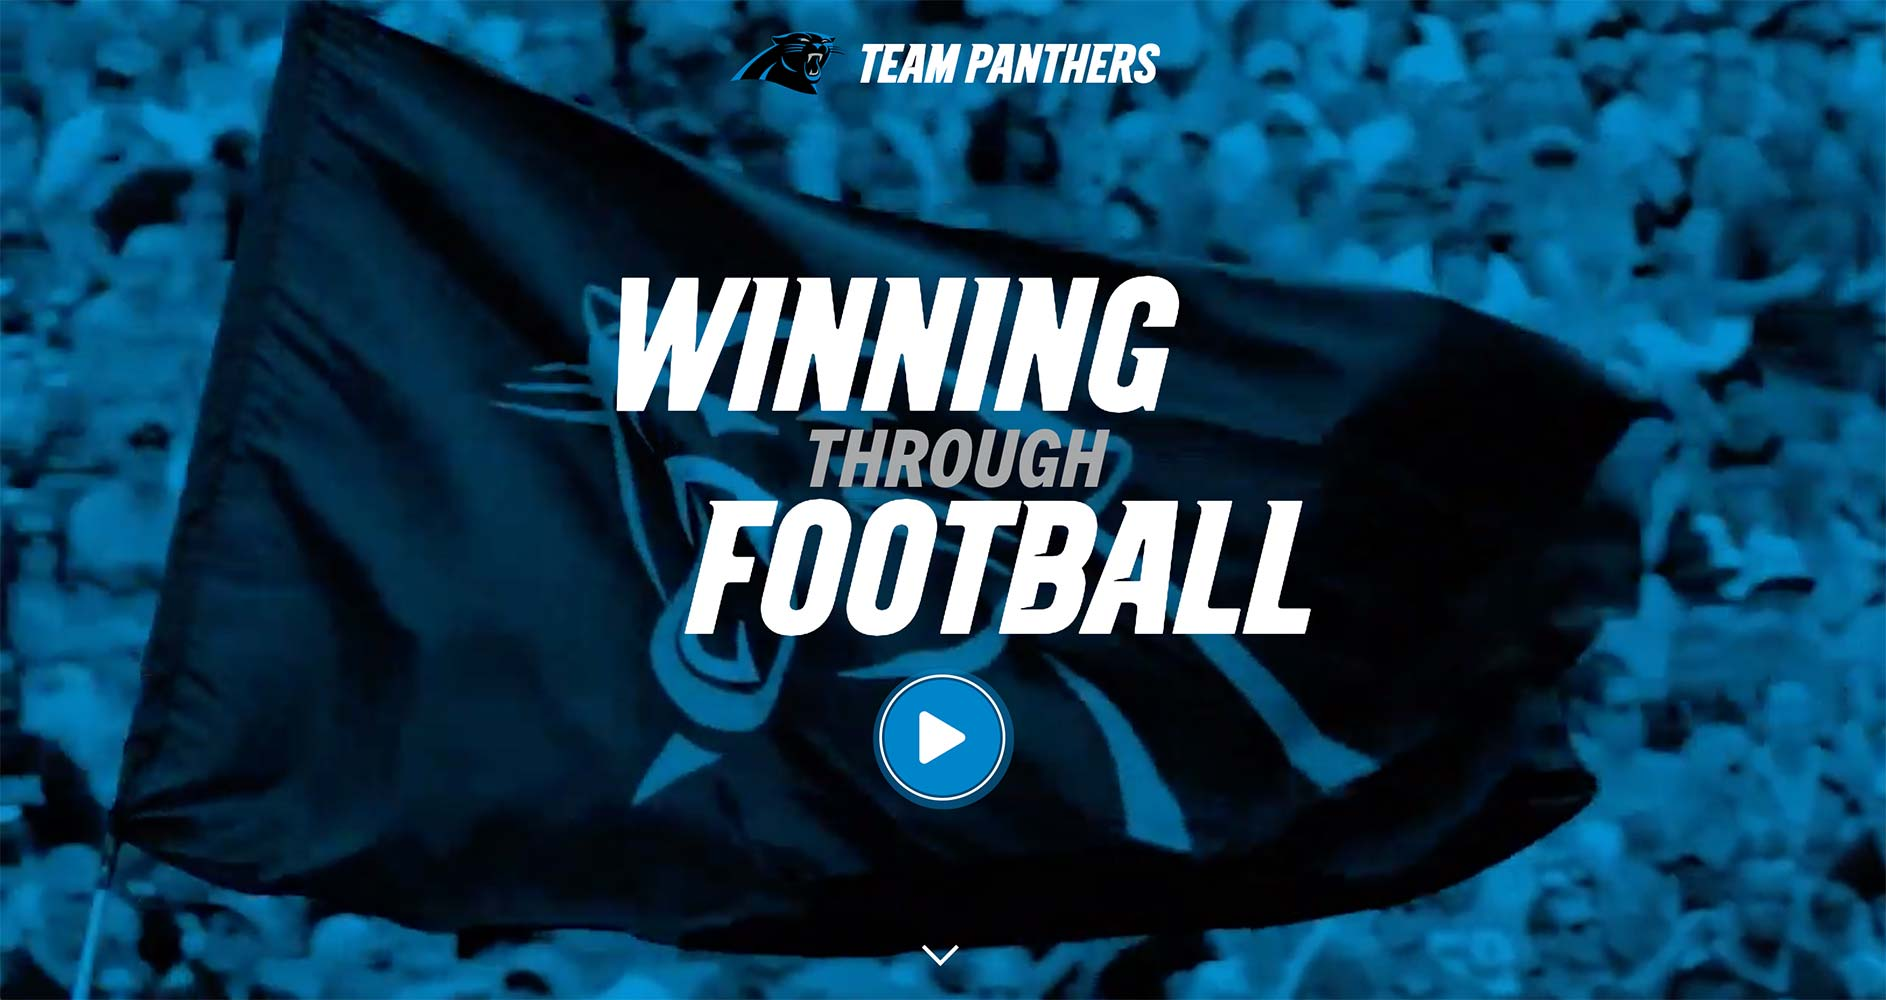 Team Panthers Website | <a href='https://teampanthers.com/' target='_blank'>Visit Site <i class='nc-icon-glyph arrows-1_share-91'></i></a><br><span>Carolina Panthers</span>